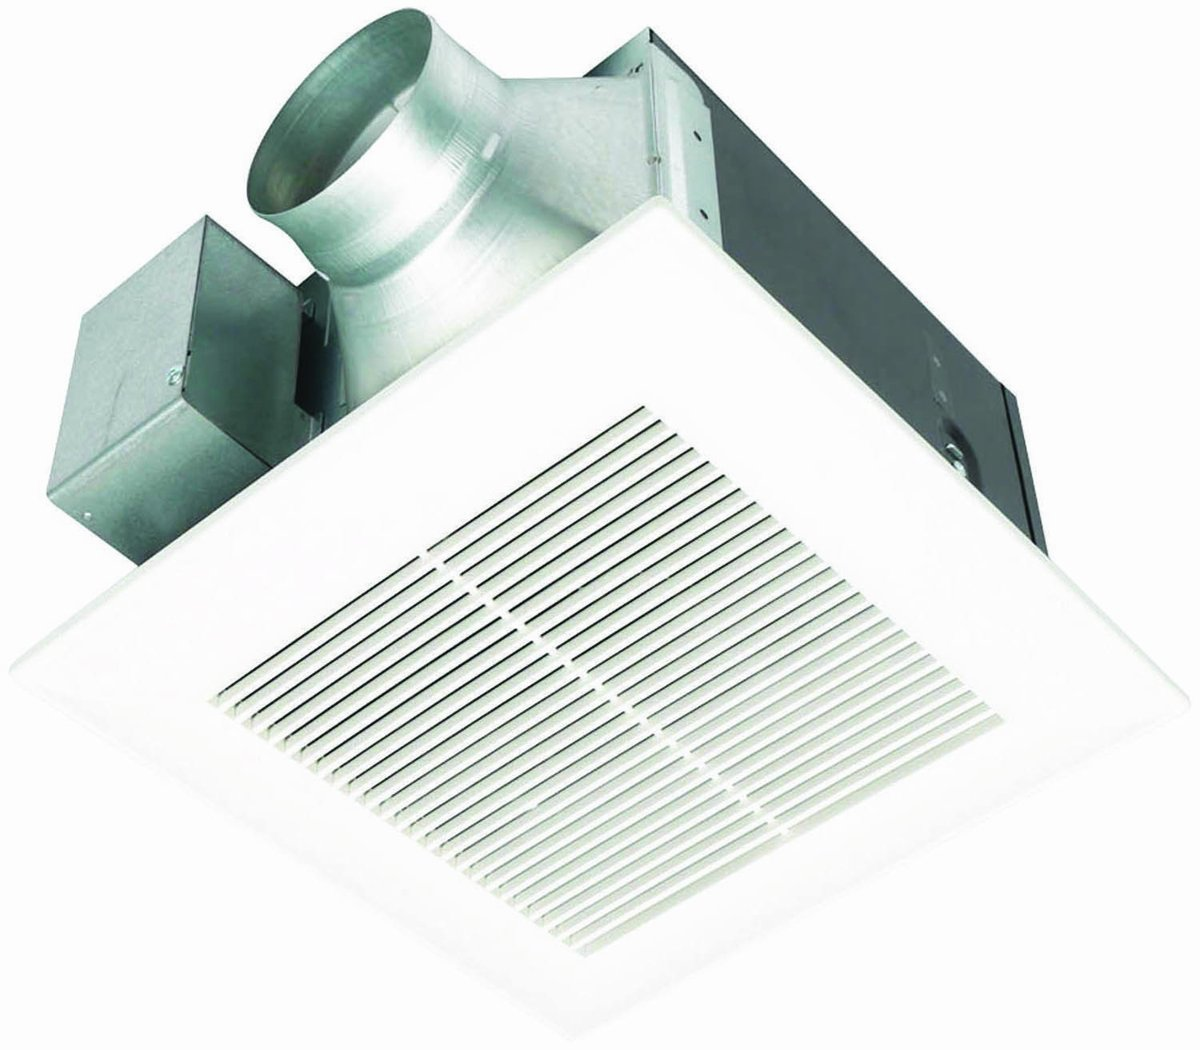 Amazoncom Panasonic FVVQ WhisperCeiling CFM Ceiling - Panasonic bathroom ventilation fan